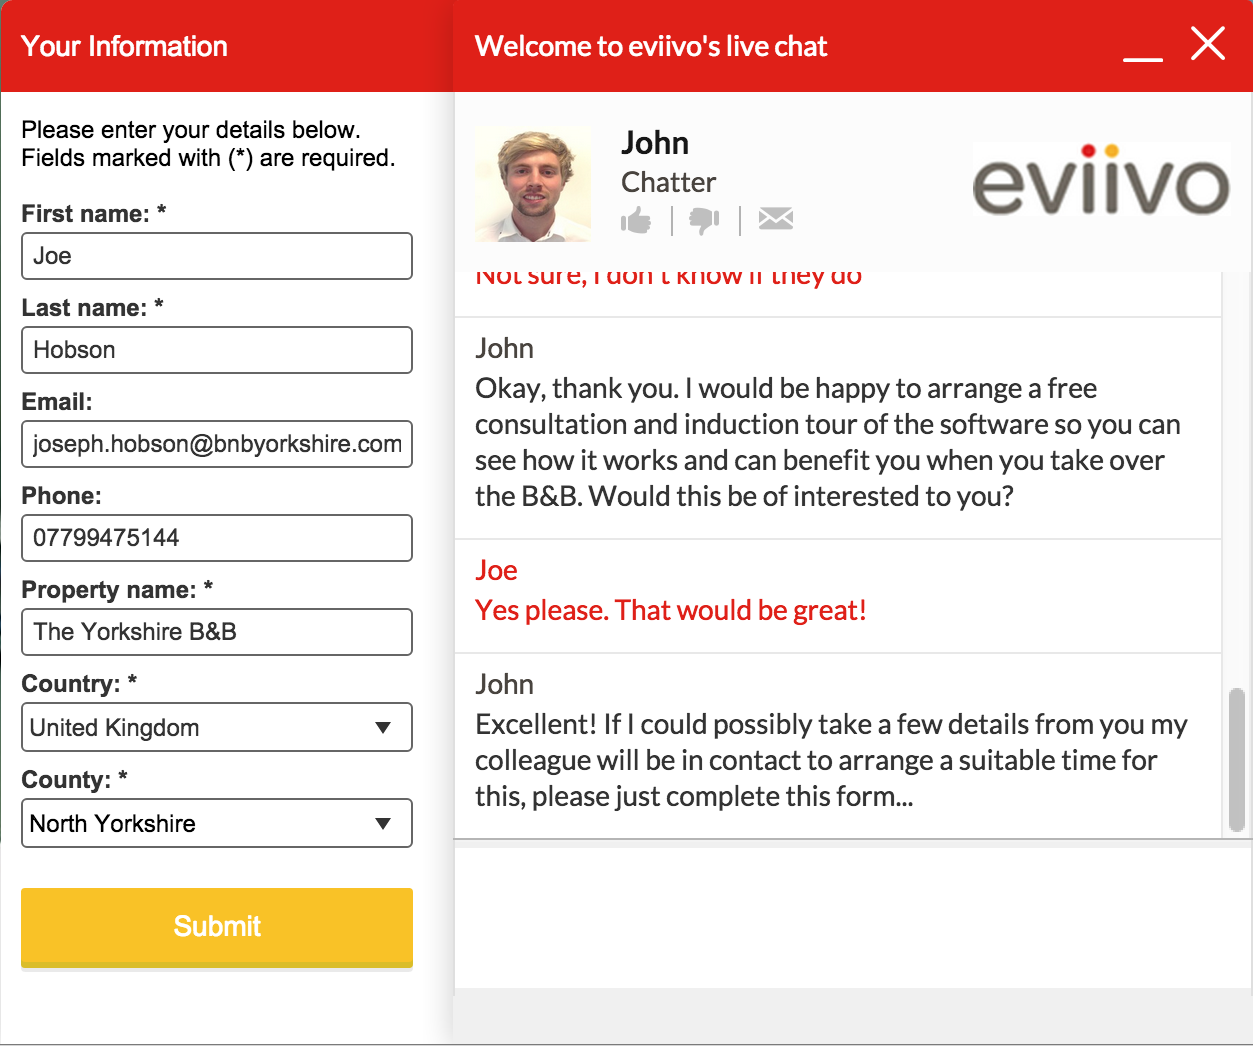 eviivo_Screenshot_-_window_with_form.png